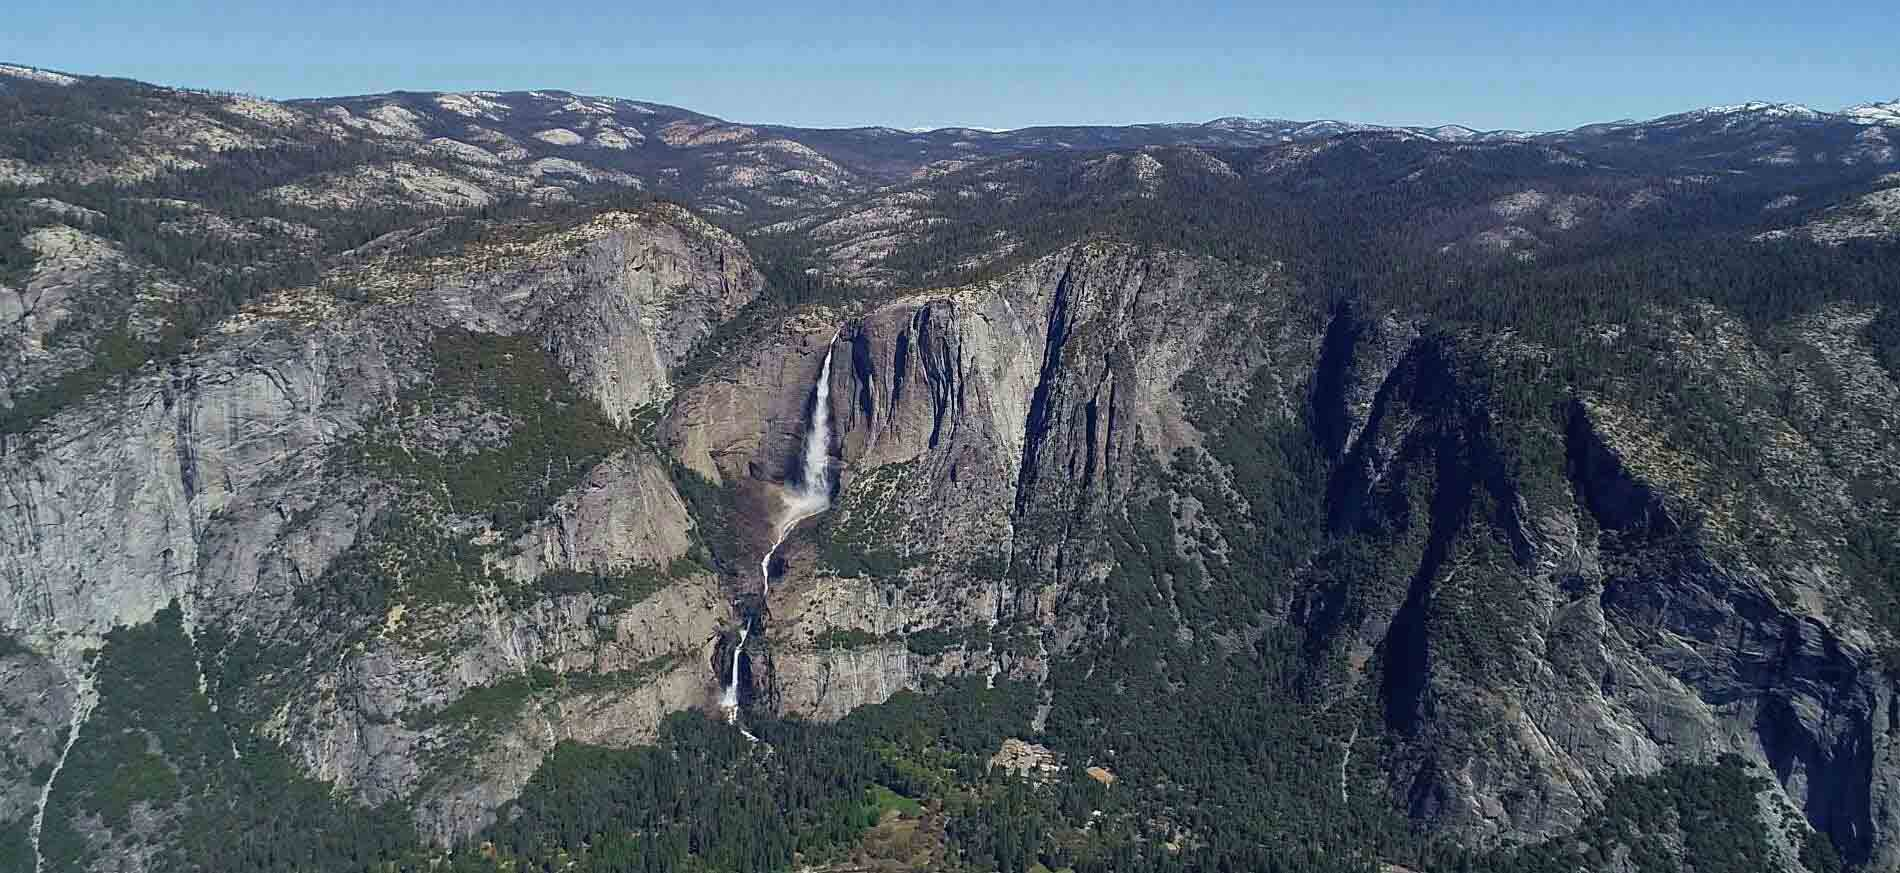 Tours_of_Yosemite_National_Park_and_Lake_Tahoe_Vacation_Packages